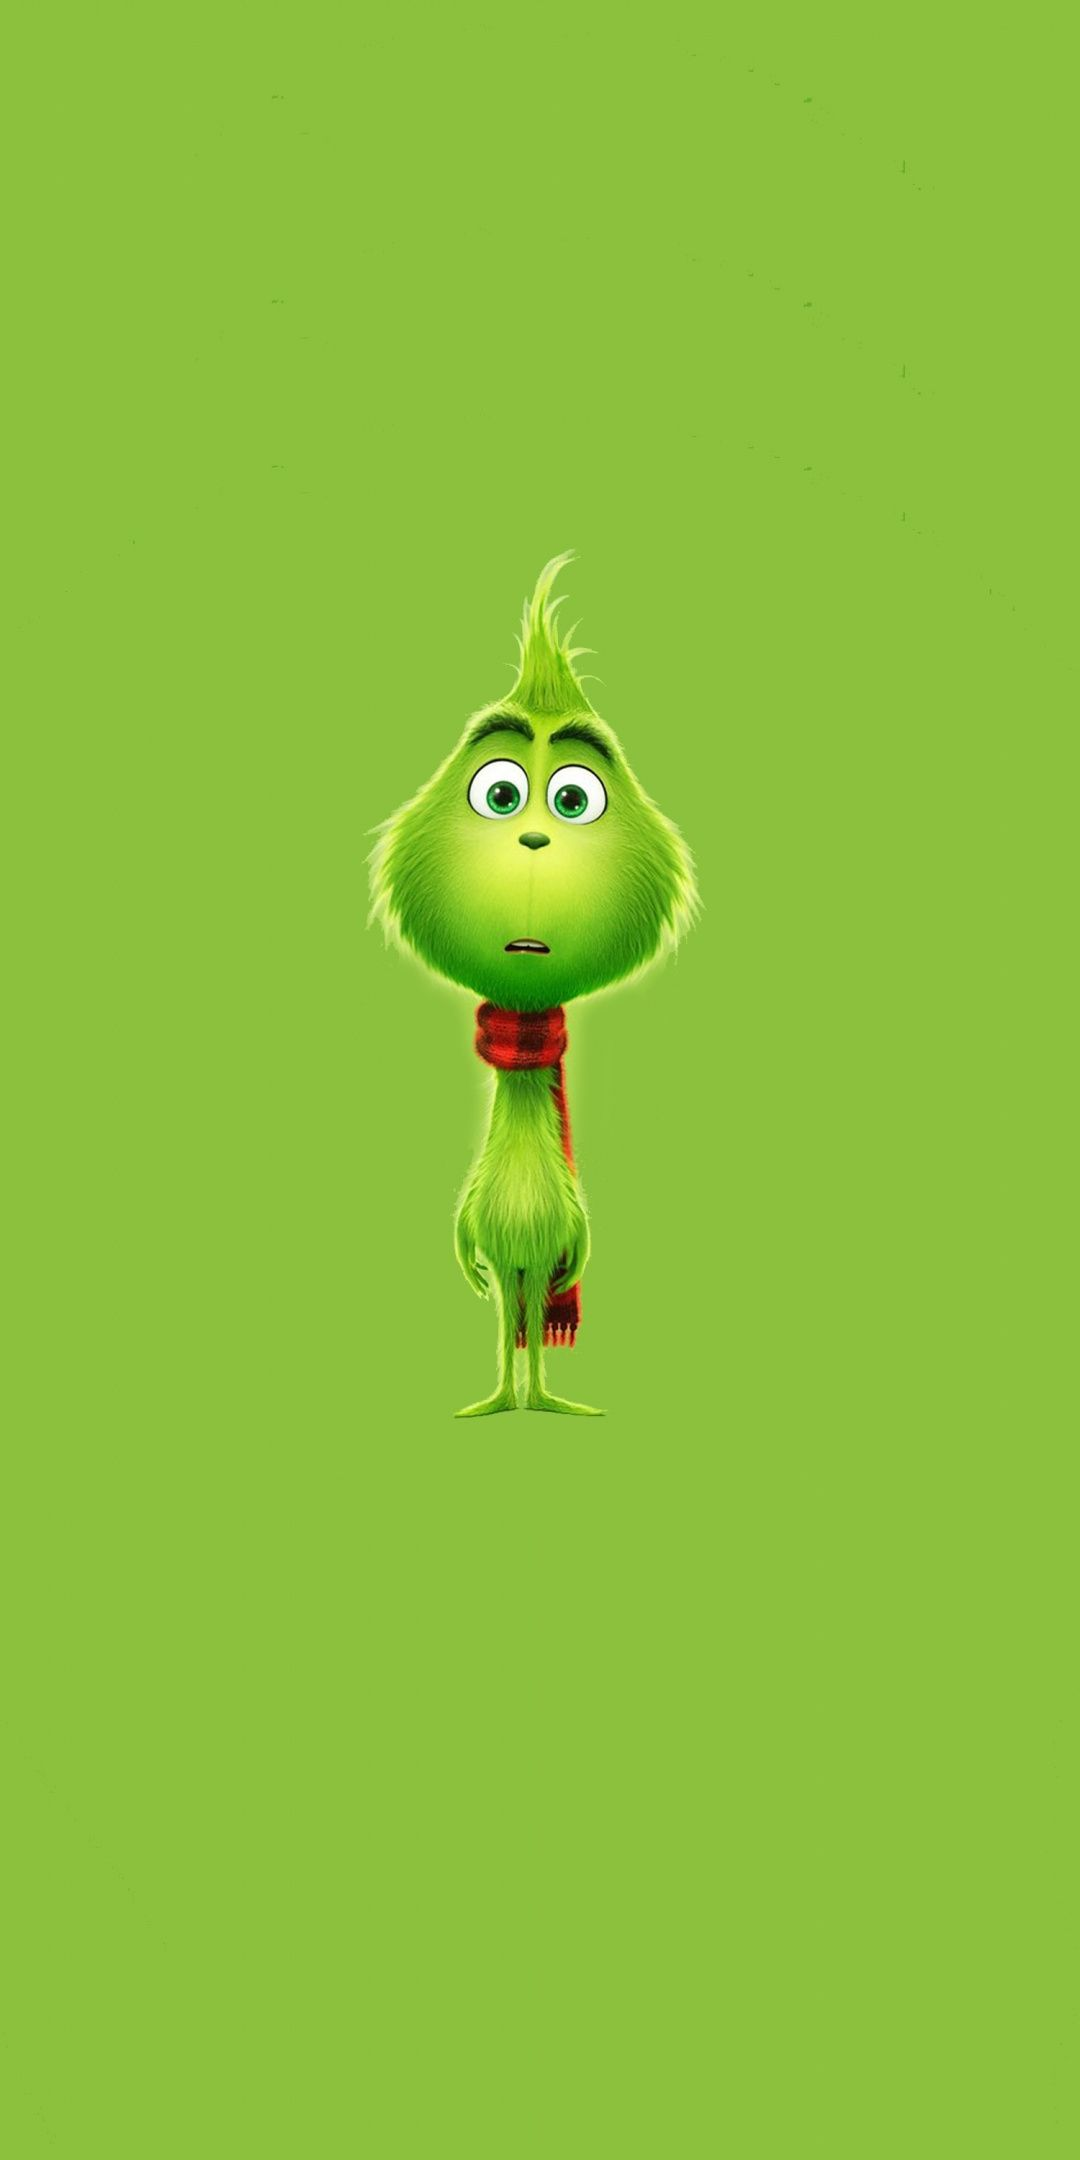 The Grinch, 2018, minimal, 1080x2160 wallpaper (With